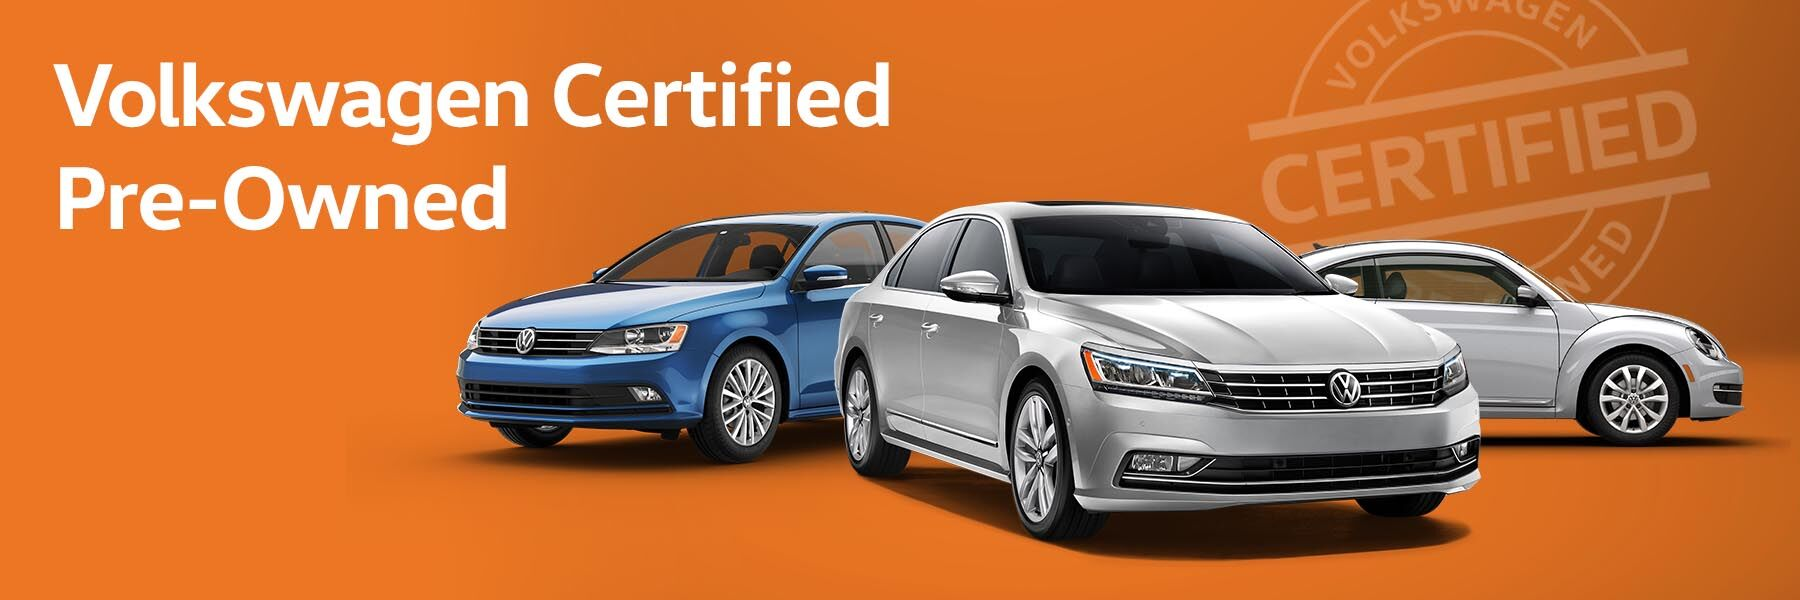 Volkswagen Certified Pre-Owned in McMinnville, OR